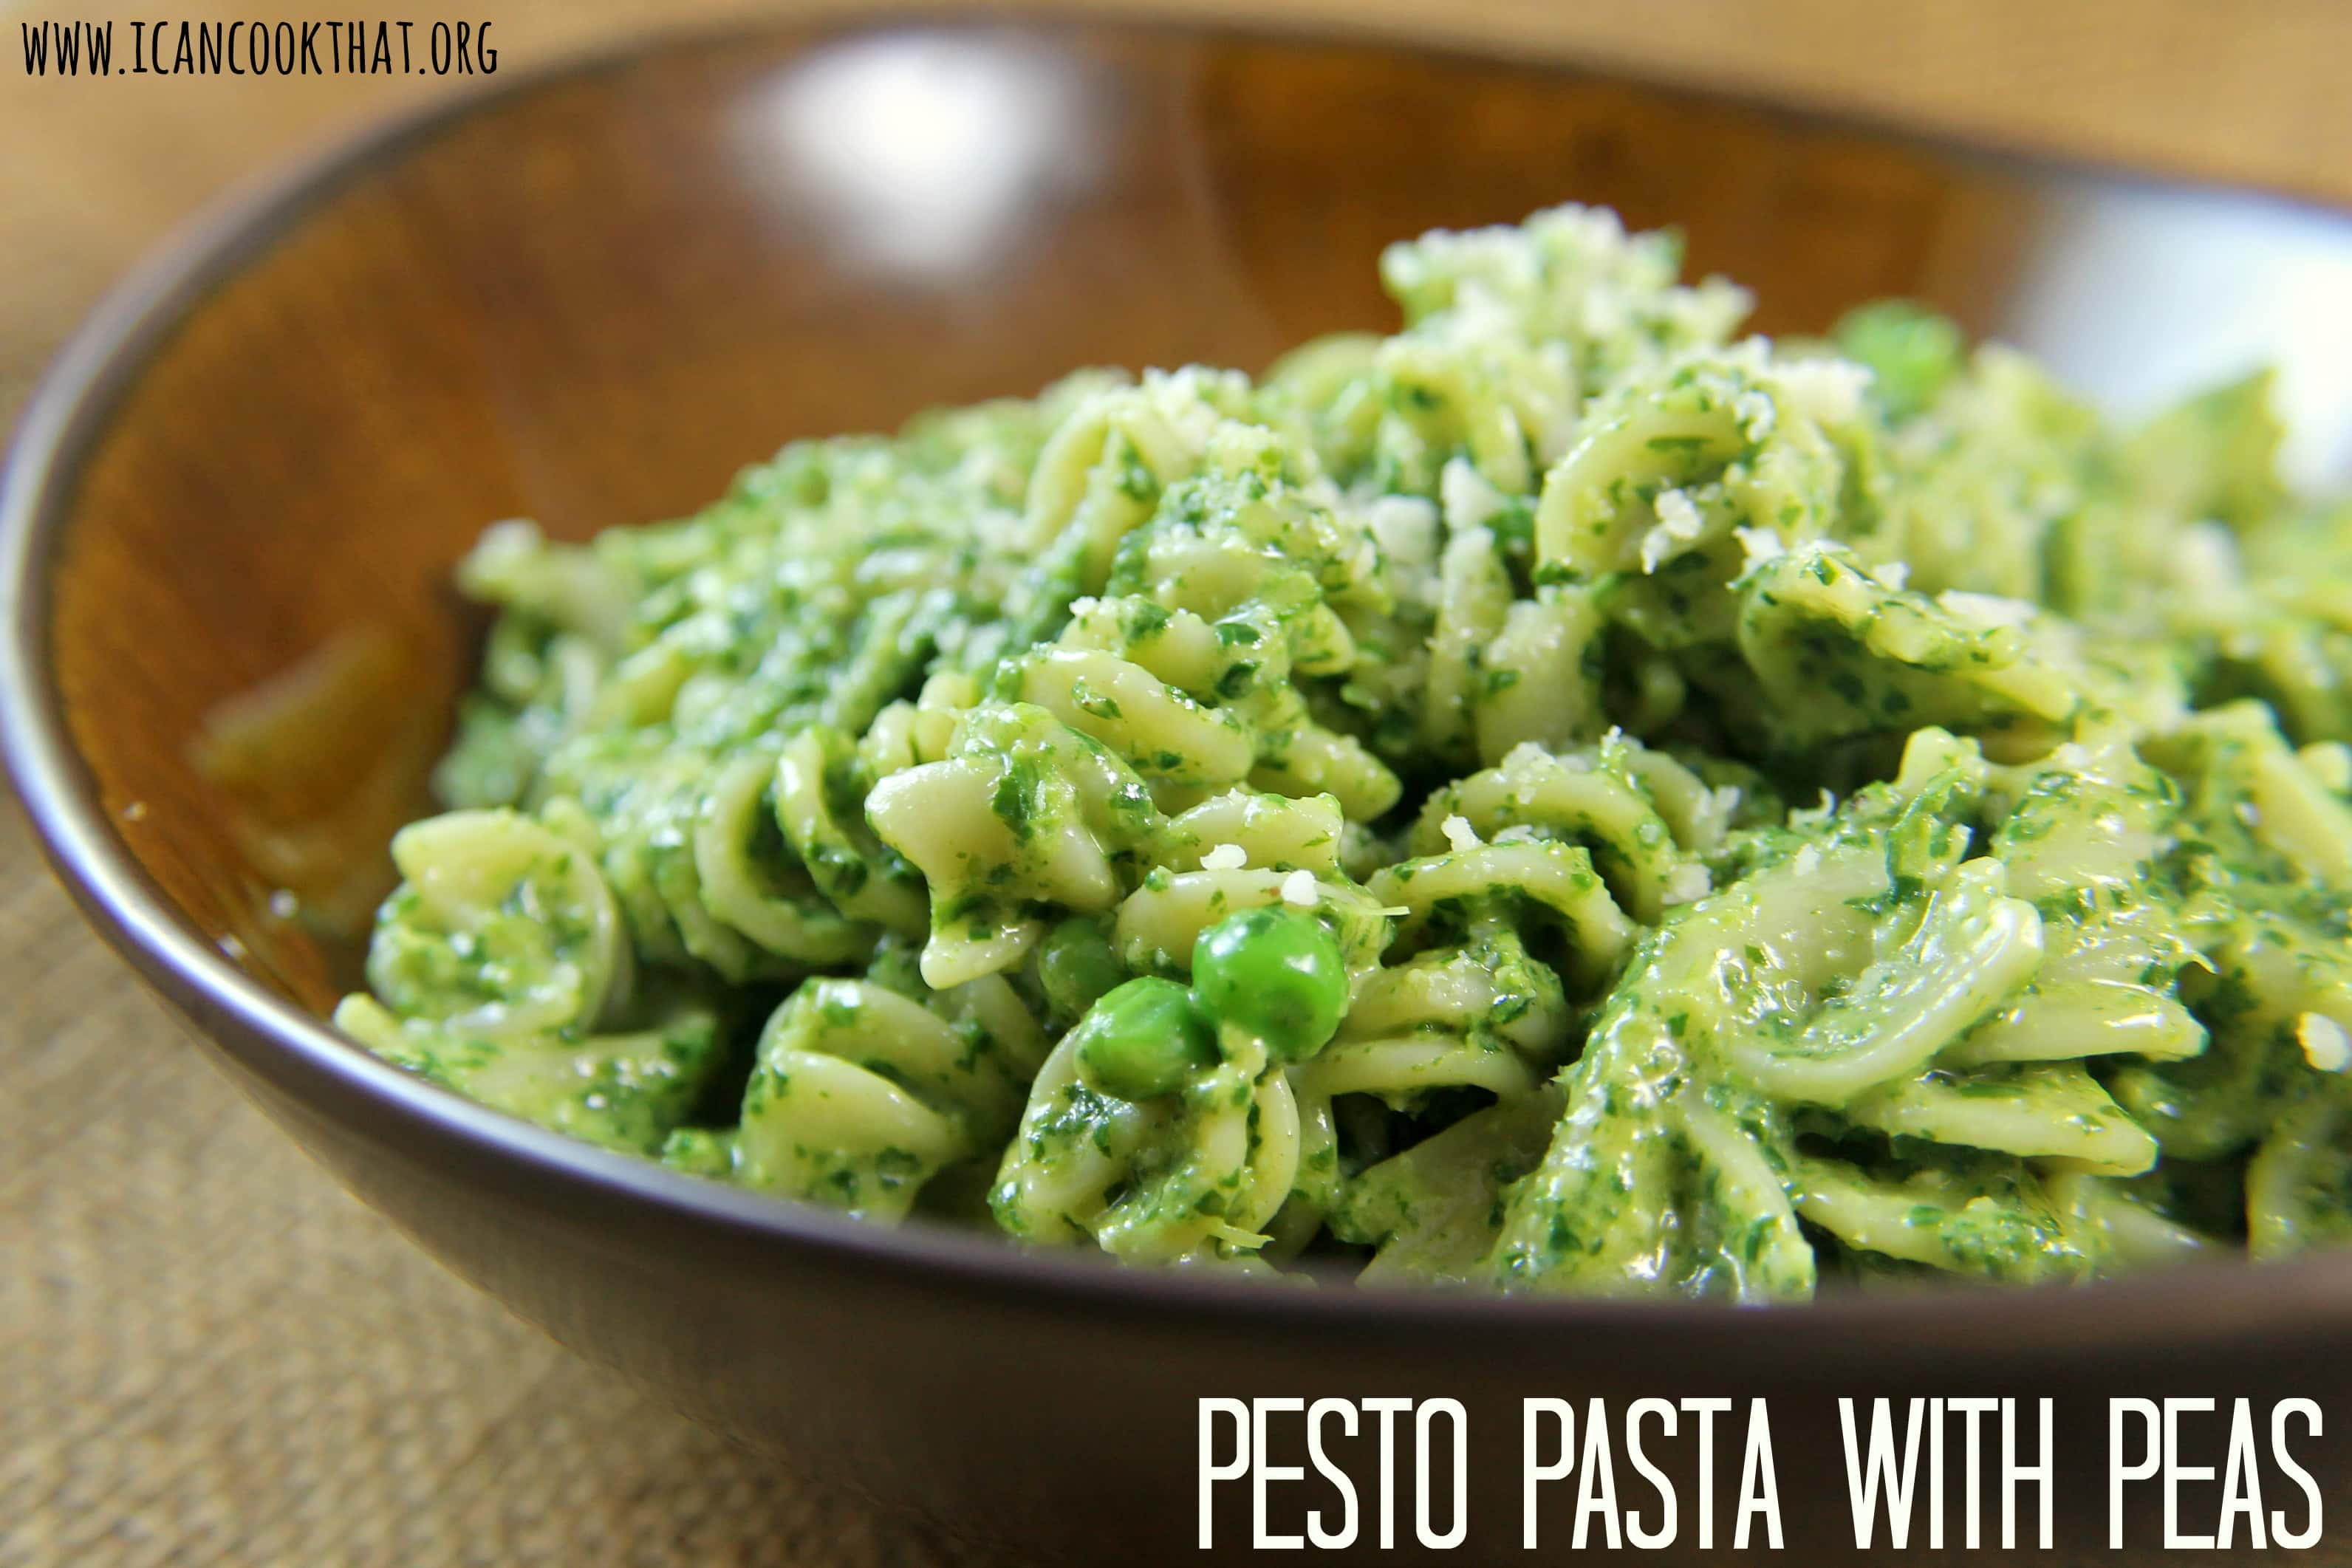 Pesto Pasta with Peas Recipe | I Can Cook That | I Can Cook That